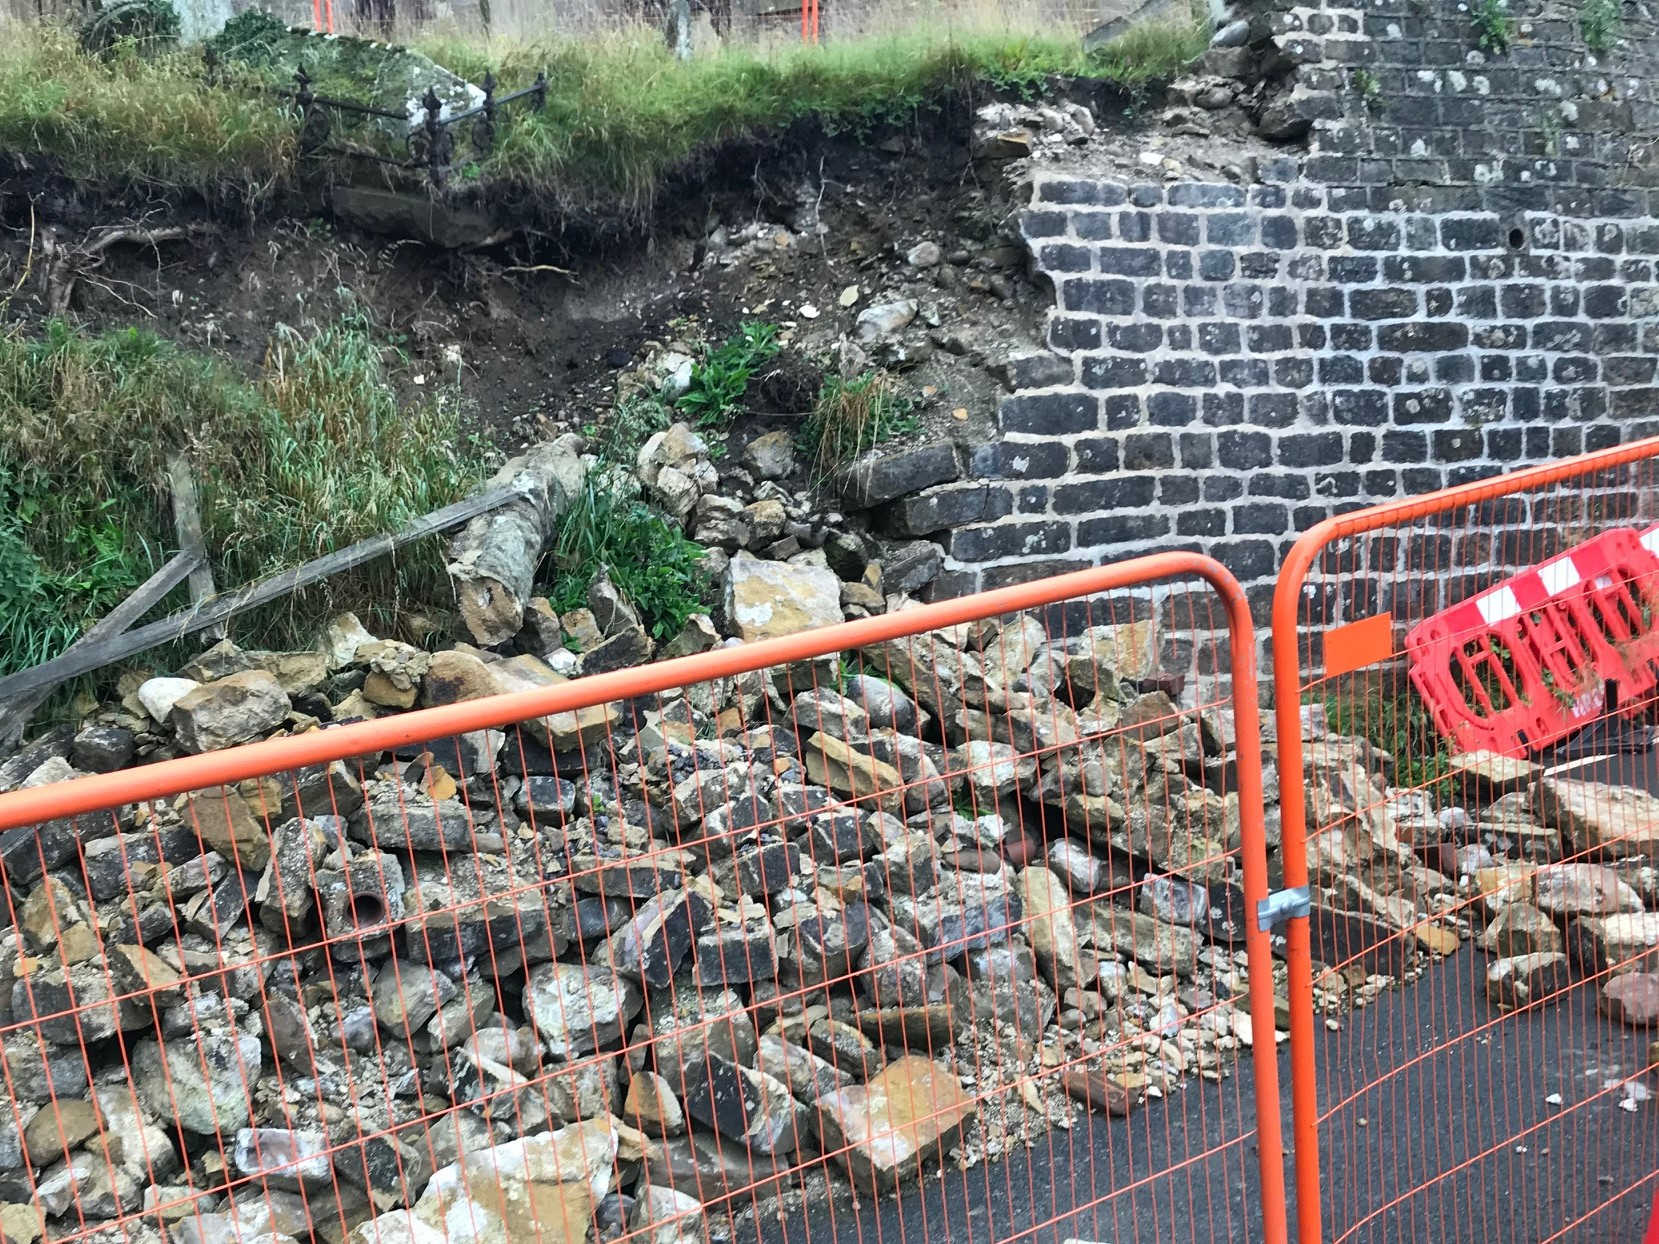 Church wall repair planned after six-month road closure